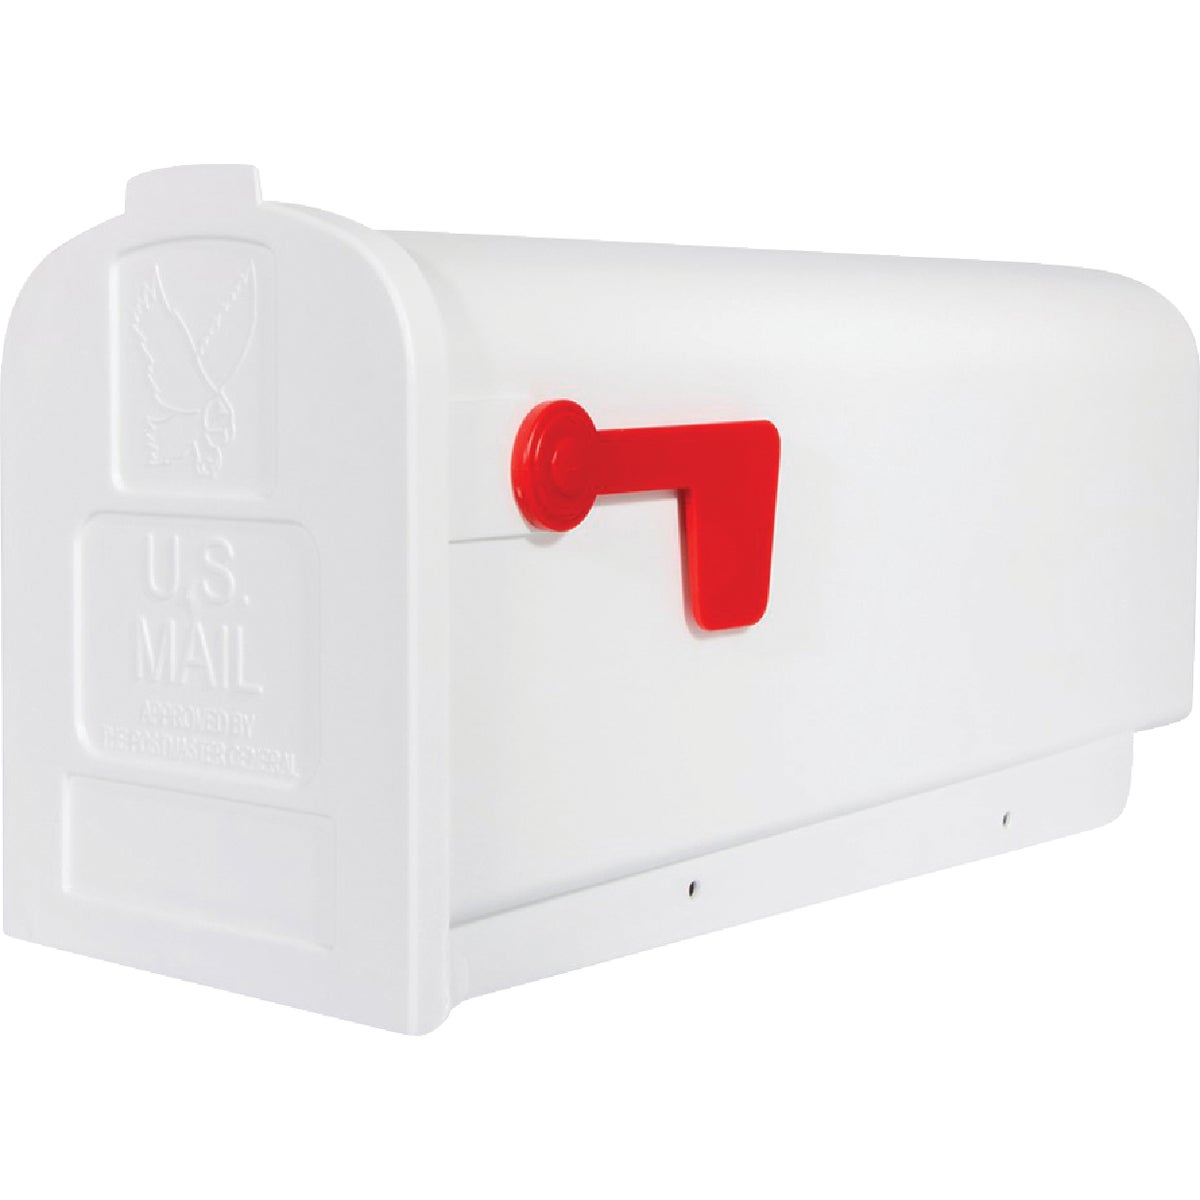 #1 WHITE POLY MAILBOX - T-R4503WT by Flambeau Products Co